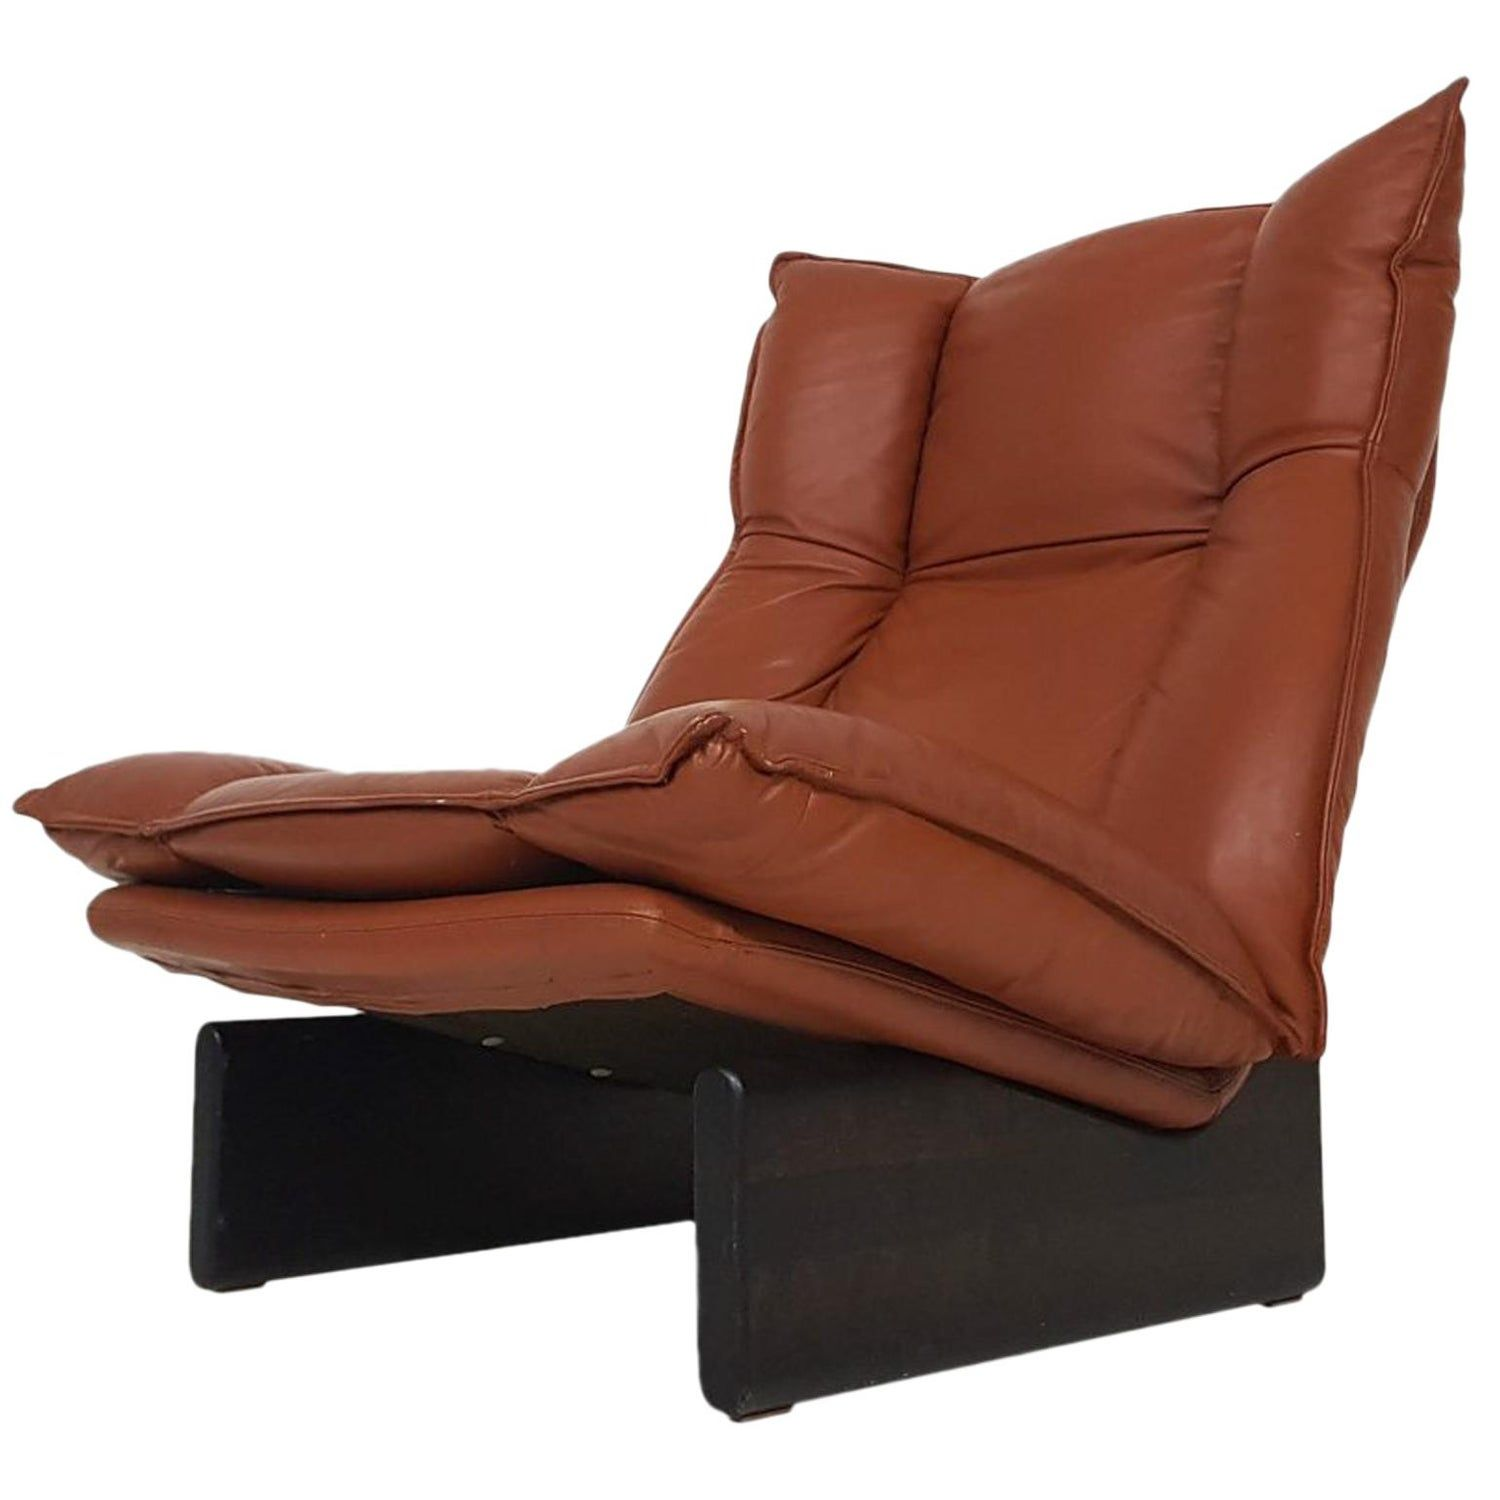 Tremendous De Sede Leather Wood Leolux 1970S Modern Dutch Lounge Chair Gmtry Best Dining Table And Chair Ideas Images Gmtryco